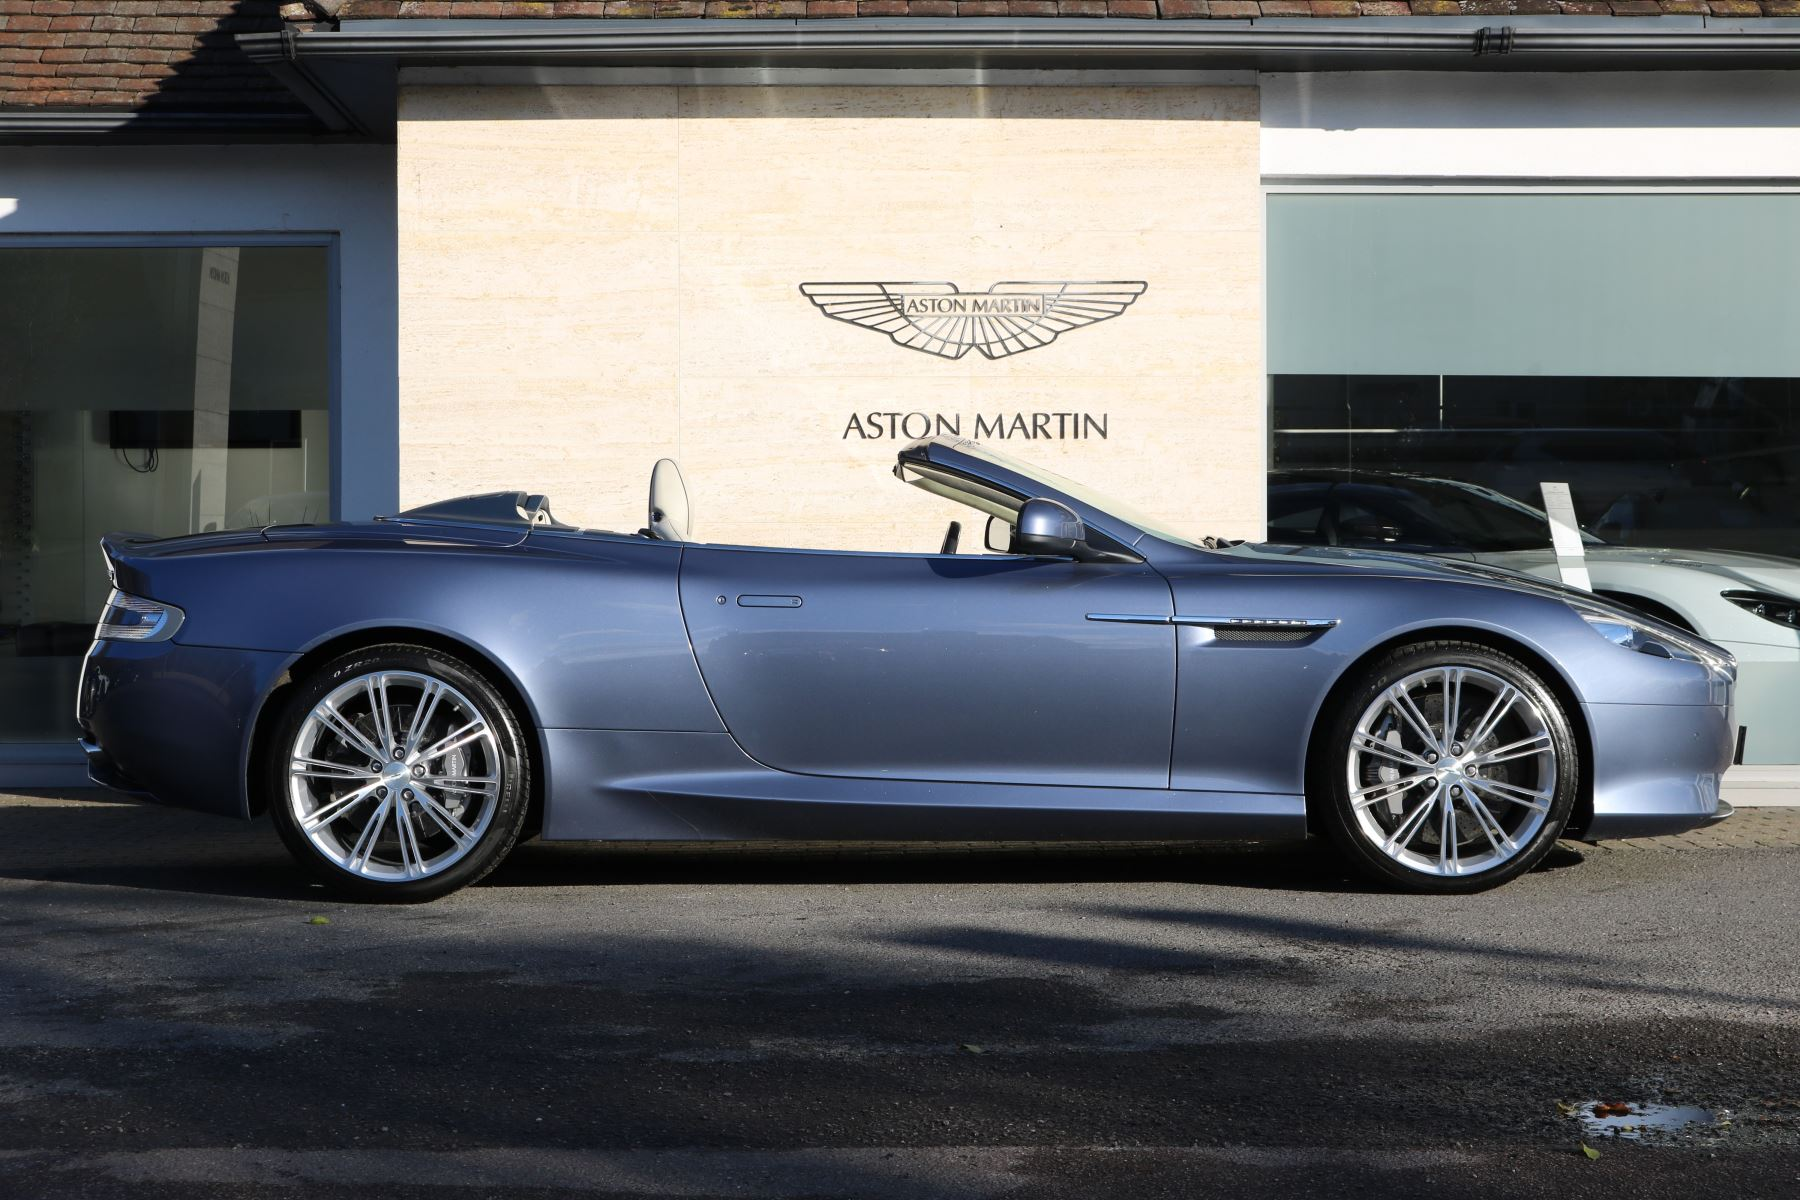 Aston Martin DB9 V12 2dr Volante Touchtronic 5.9 Automatic Convertible (2015)  at Aston Martin Welwyn